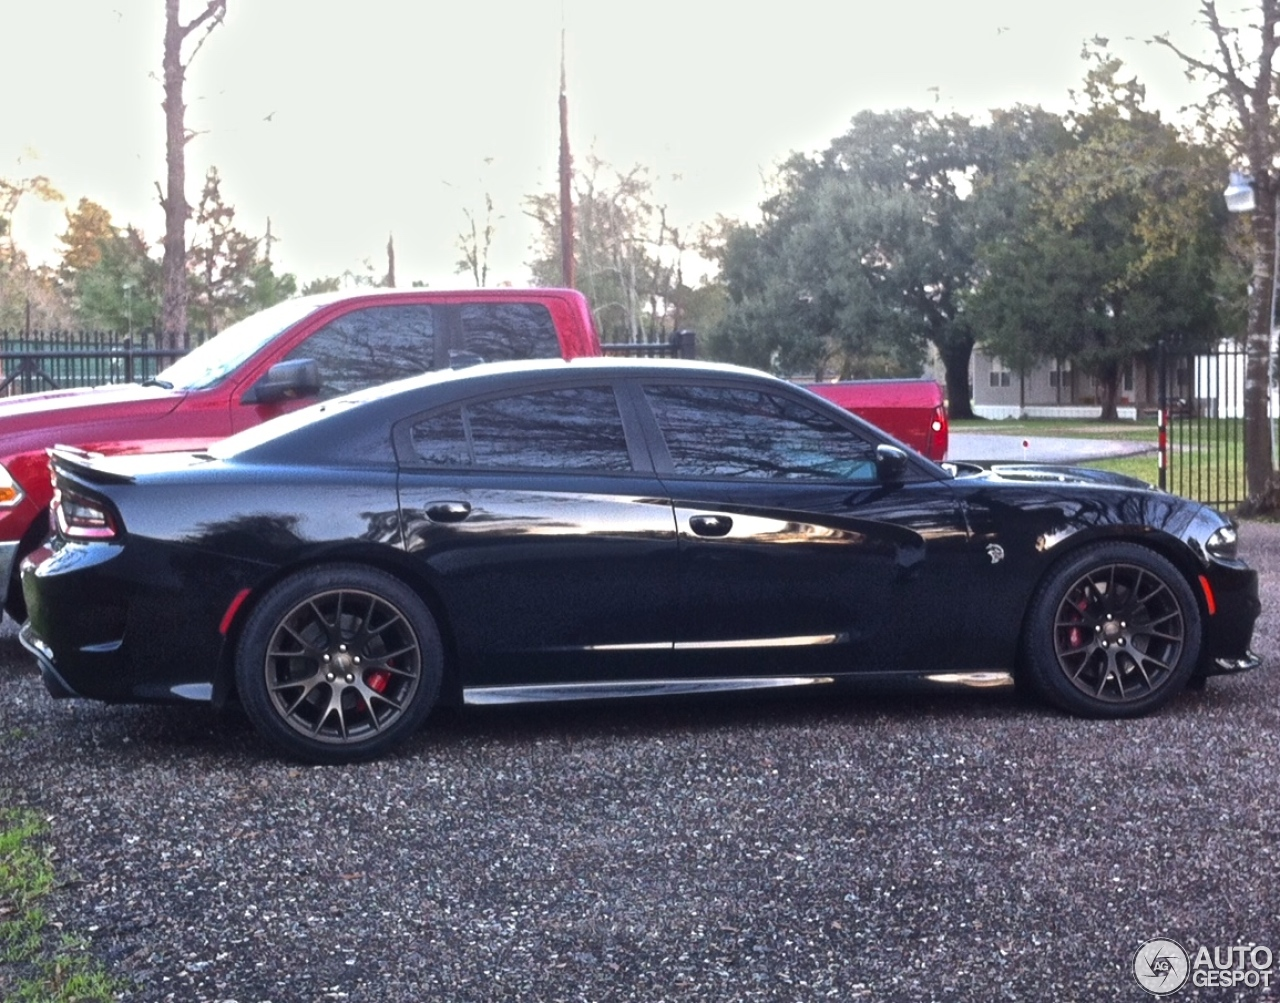 17 Charger Hellcat >> Dodge Charger SRT Hellcat 2015 - 18 January 2016 - Autogespot